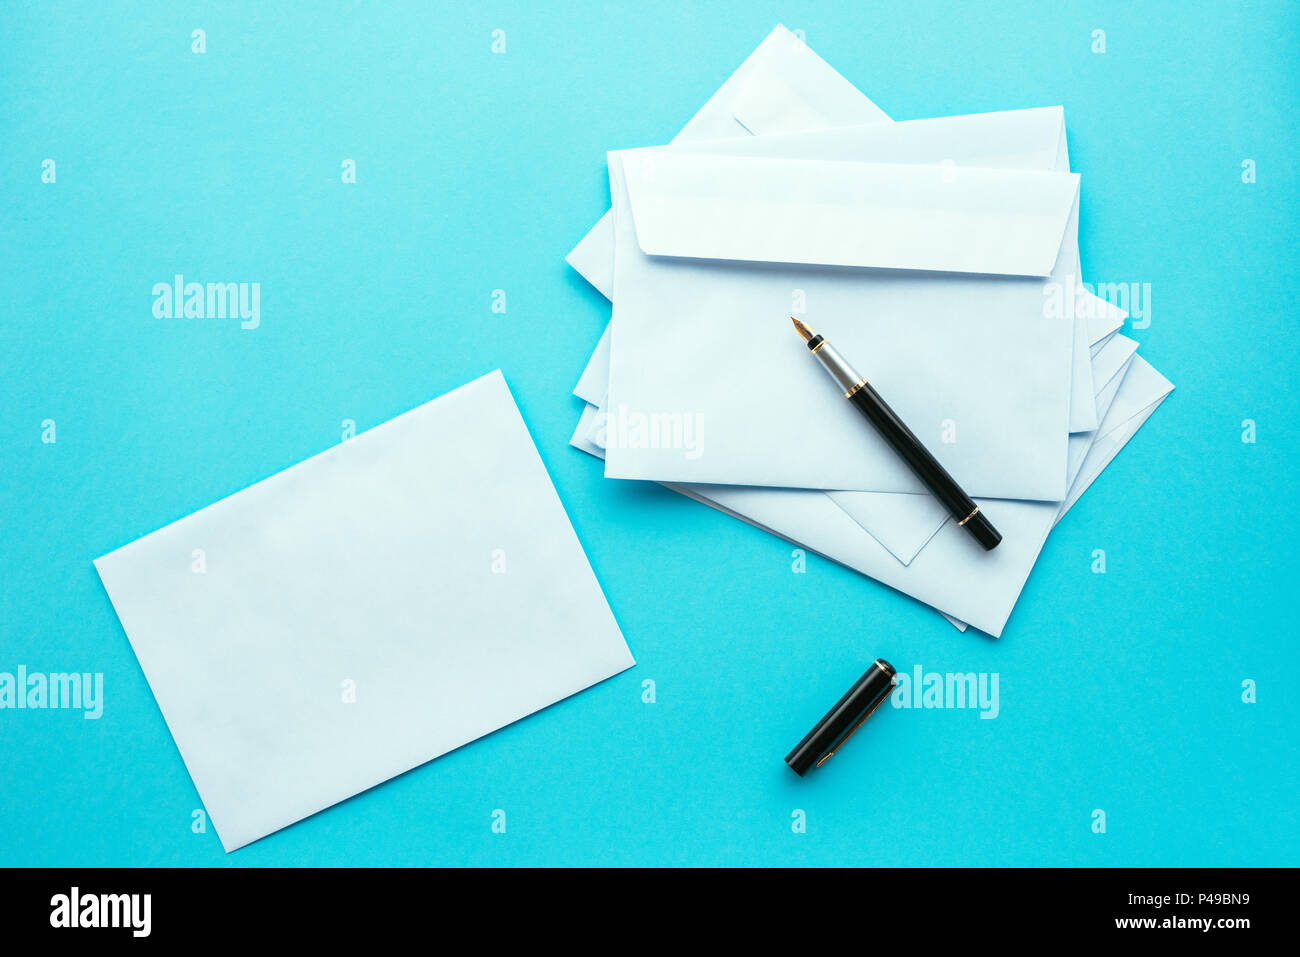 Blank white envelopes as mock up copy space for communication and correspondence themes, top view - Stock Image